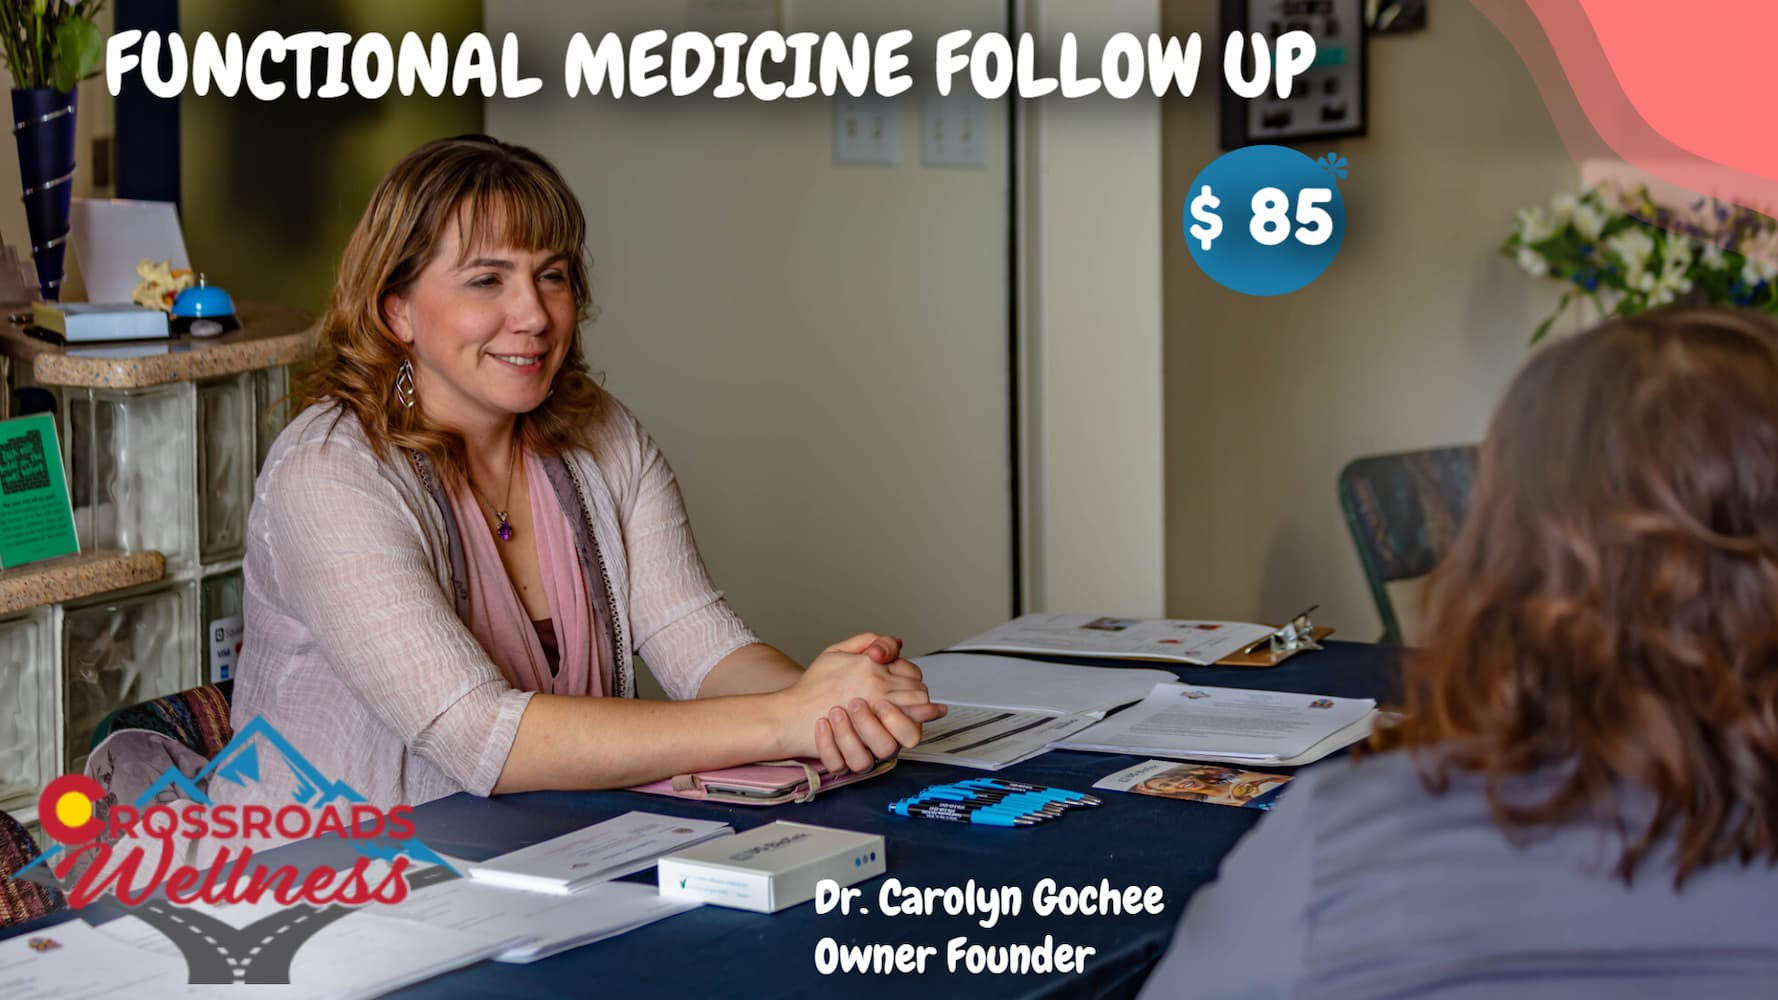 FUNCTIONAL MEDICINE FOLLOW UP with Dr. Gochee